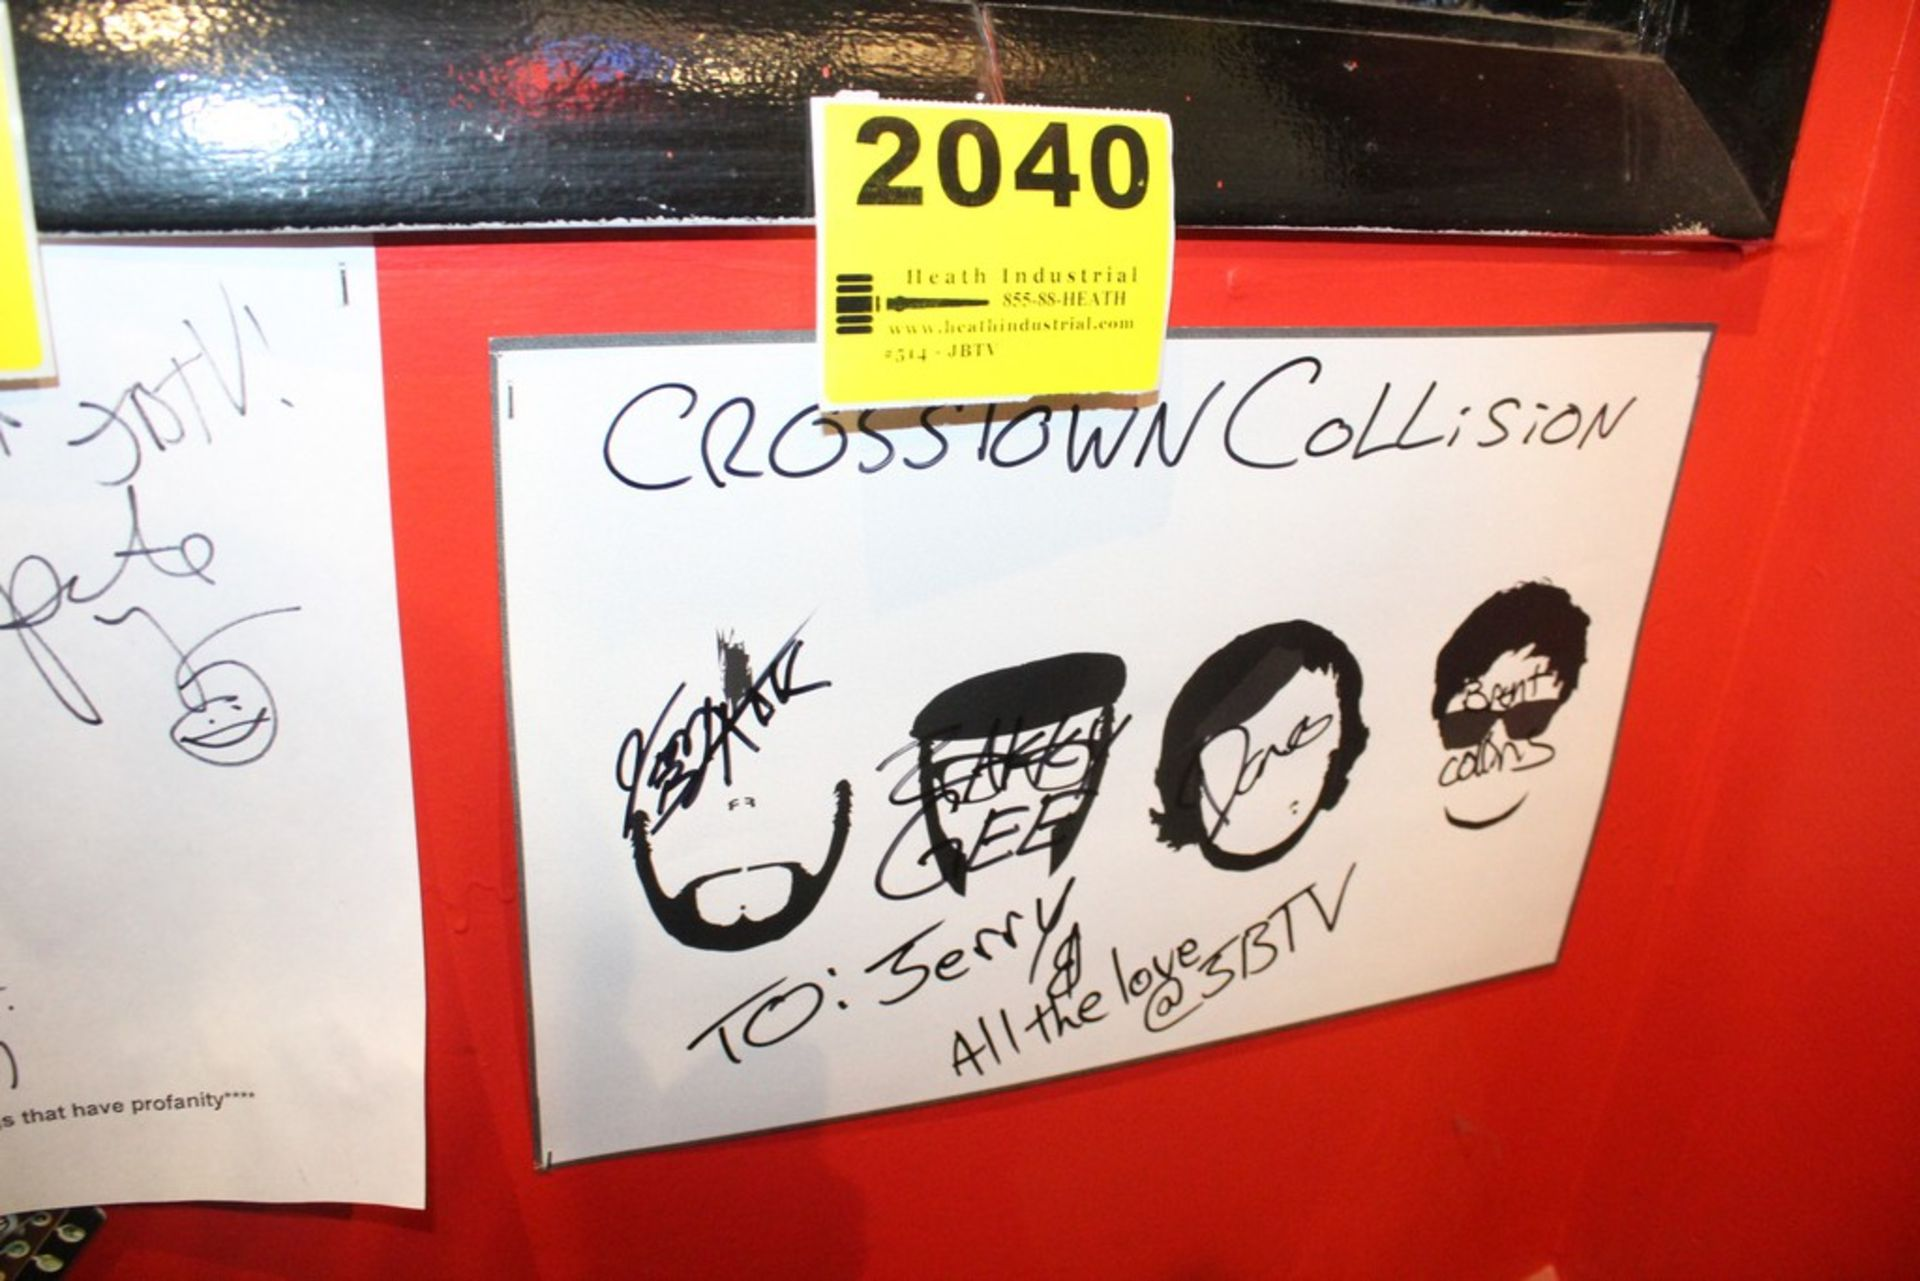 Lot 2040 - Crosstown Collision Signed Poster